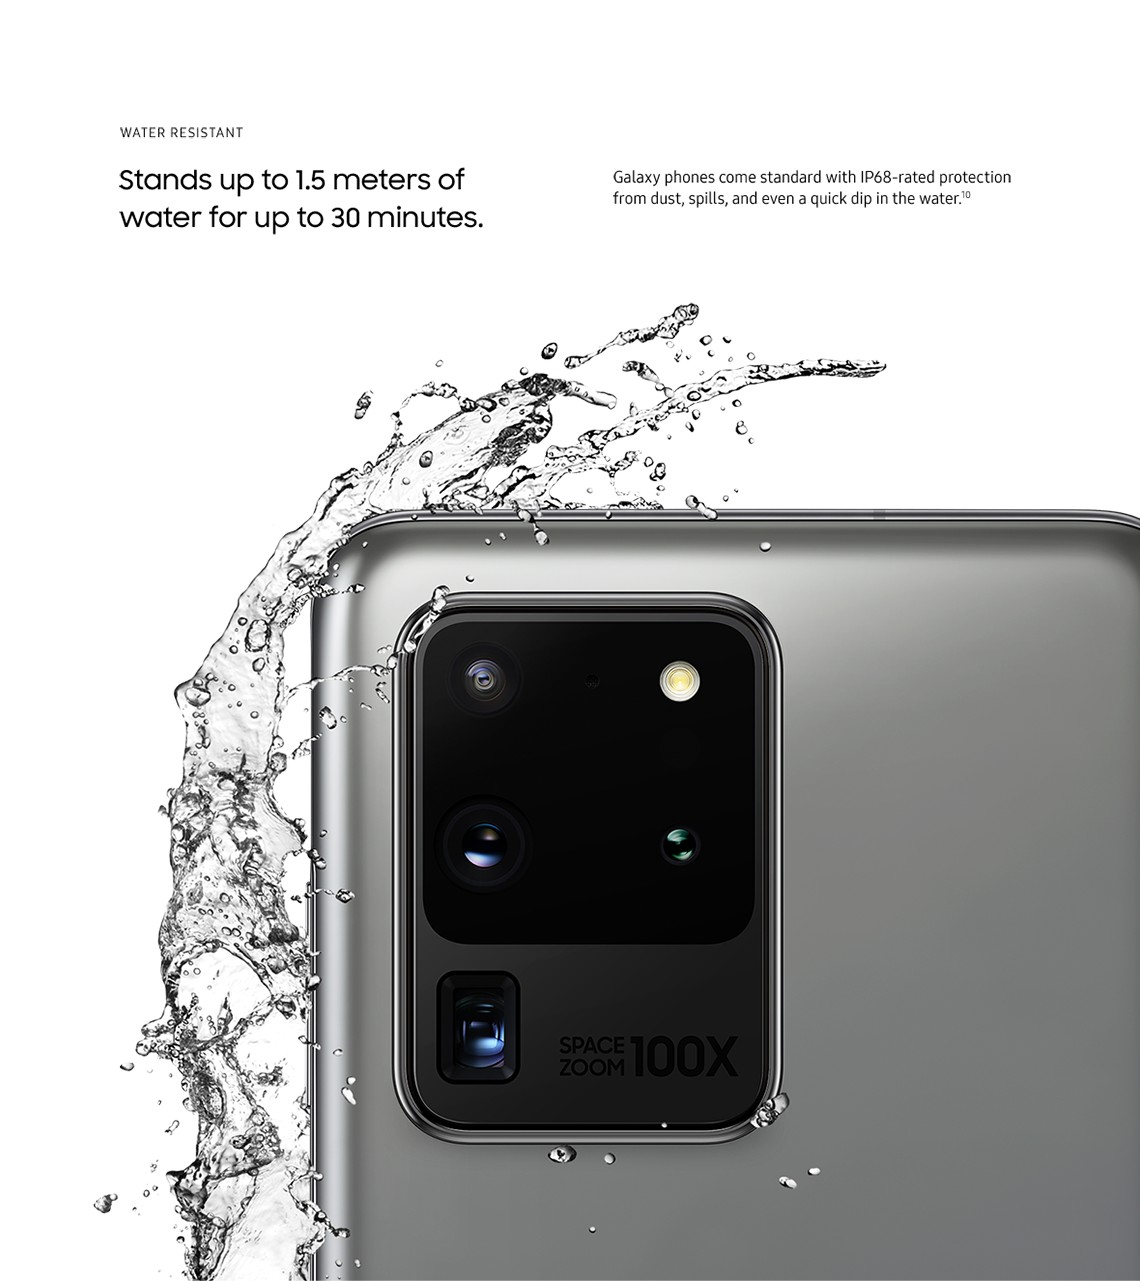 Galaxy phones are water resistant in up to 1 and a half meters of water for up to 30 minutes.